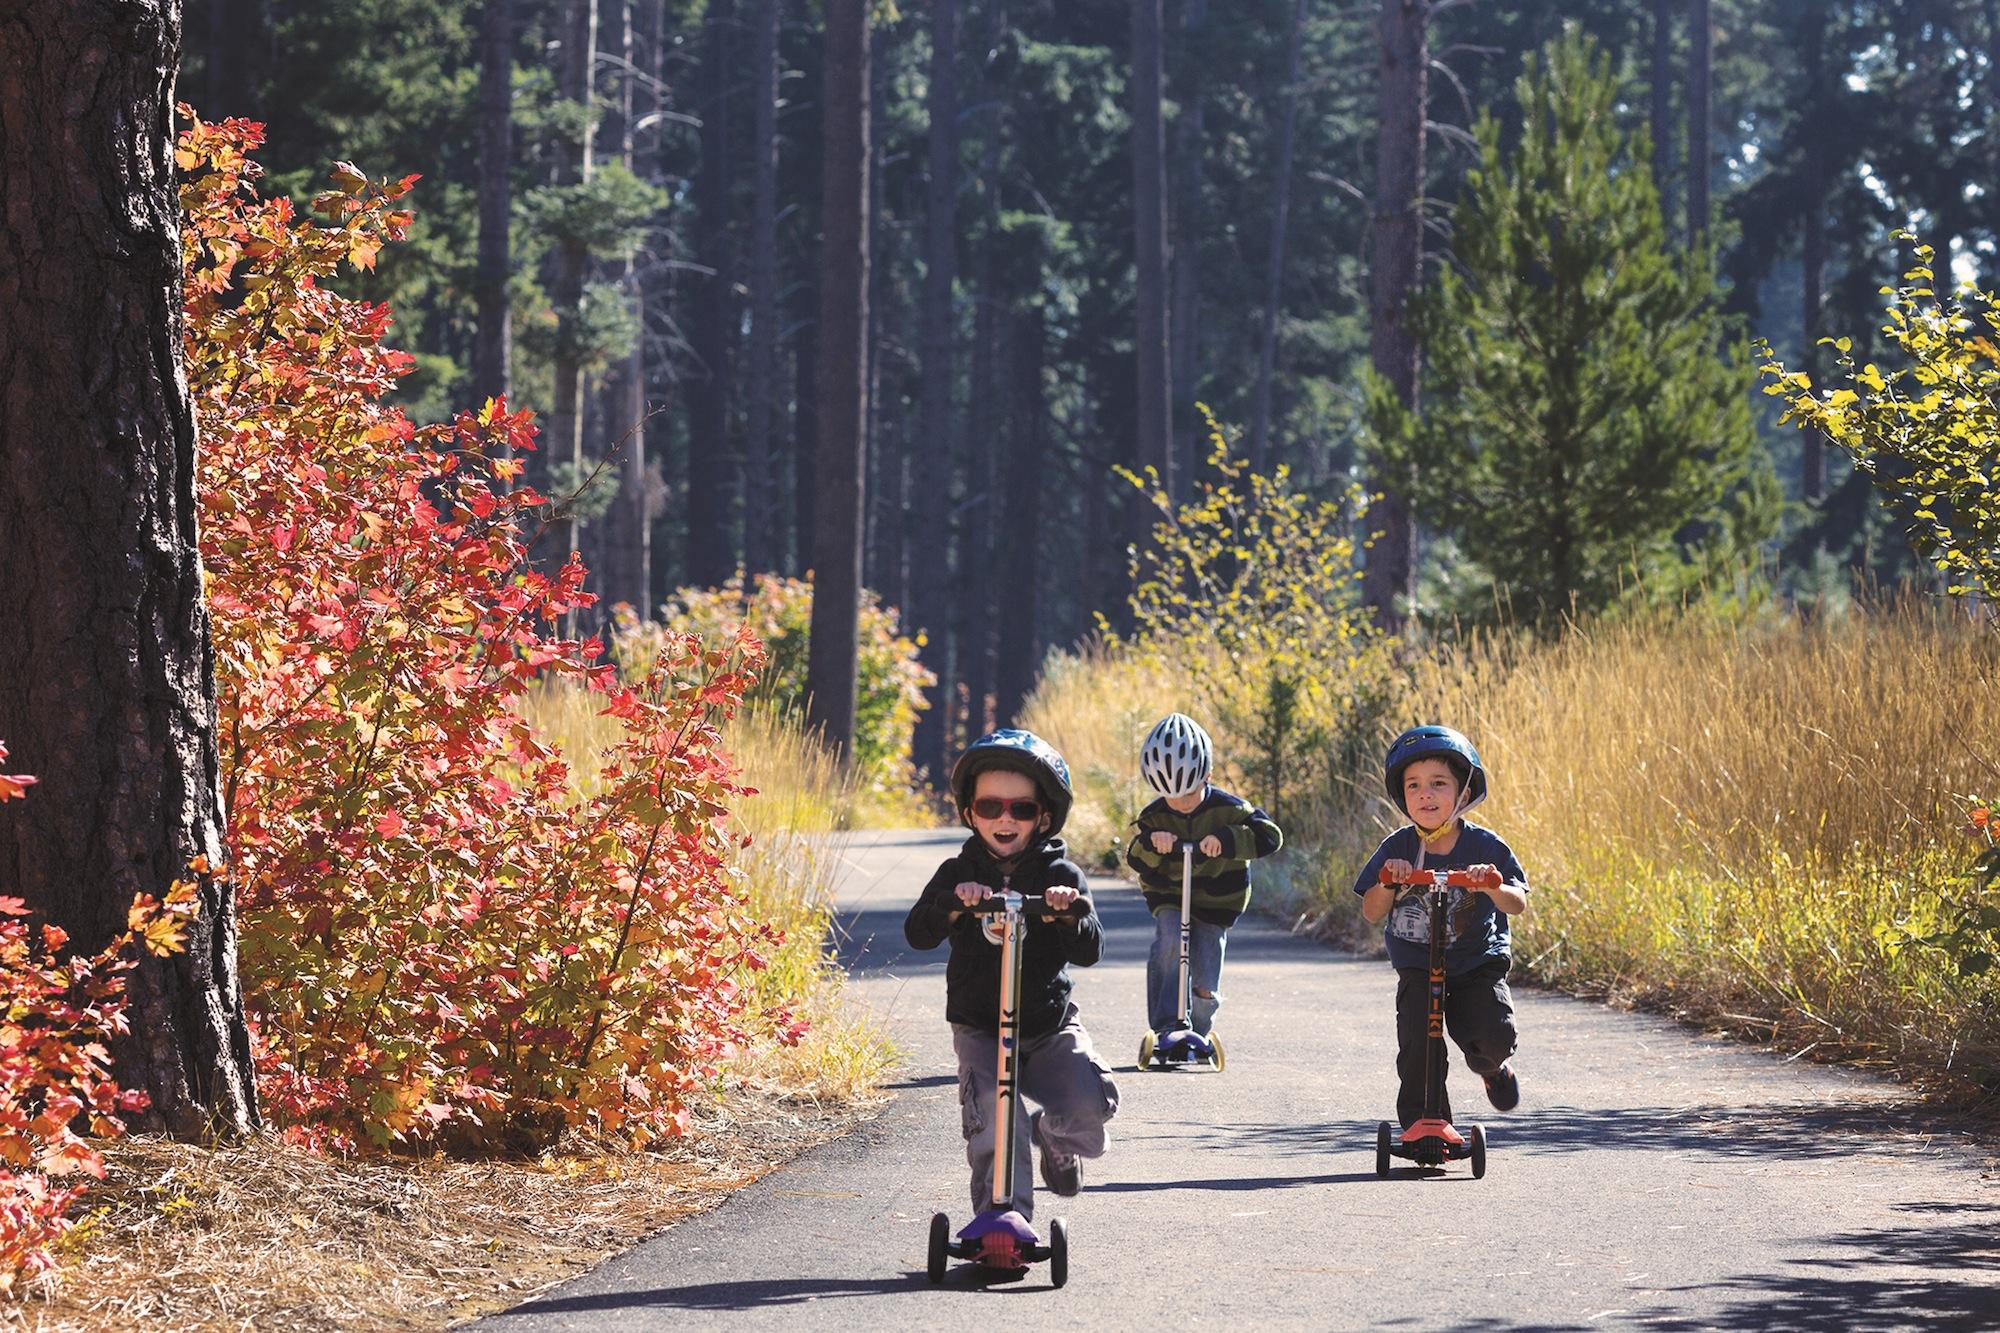 May is Wellness Month at Suncadia Resort, a gorgeous mountain escape an easy 80 miles from Seattle.